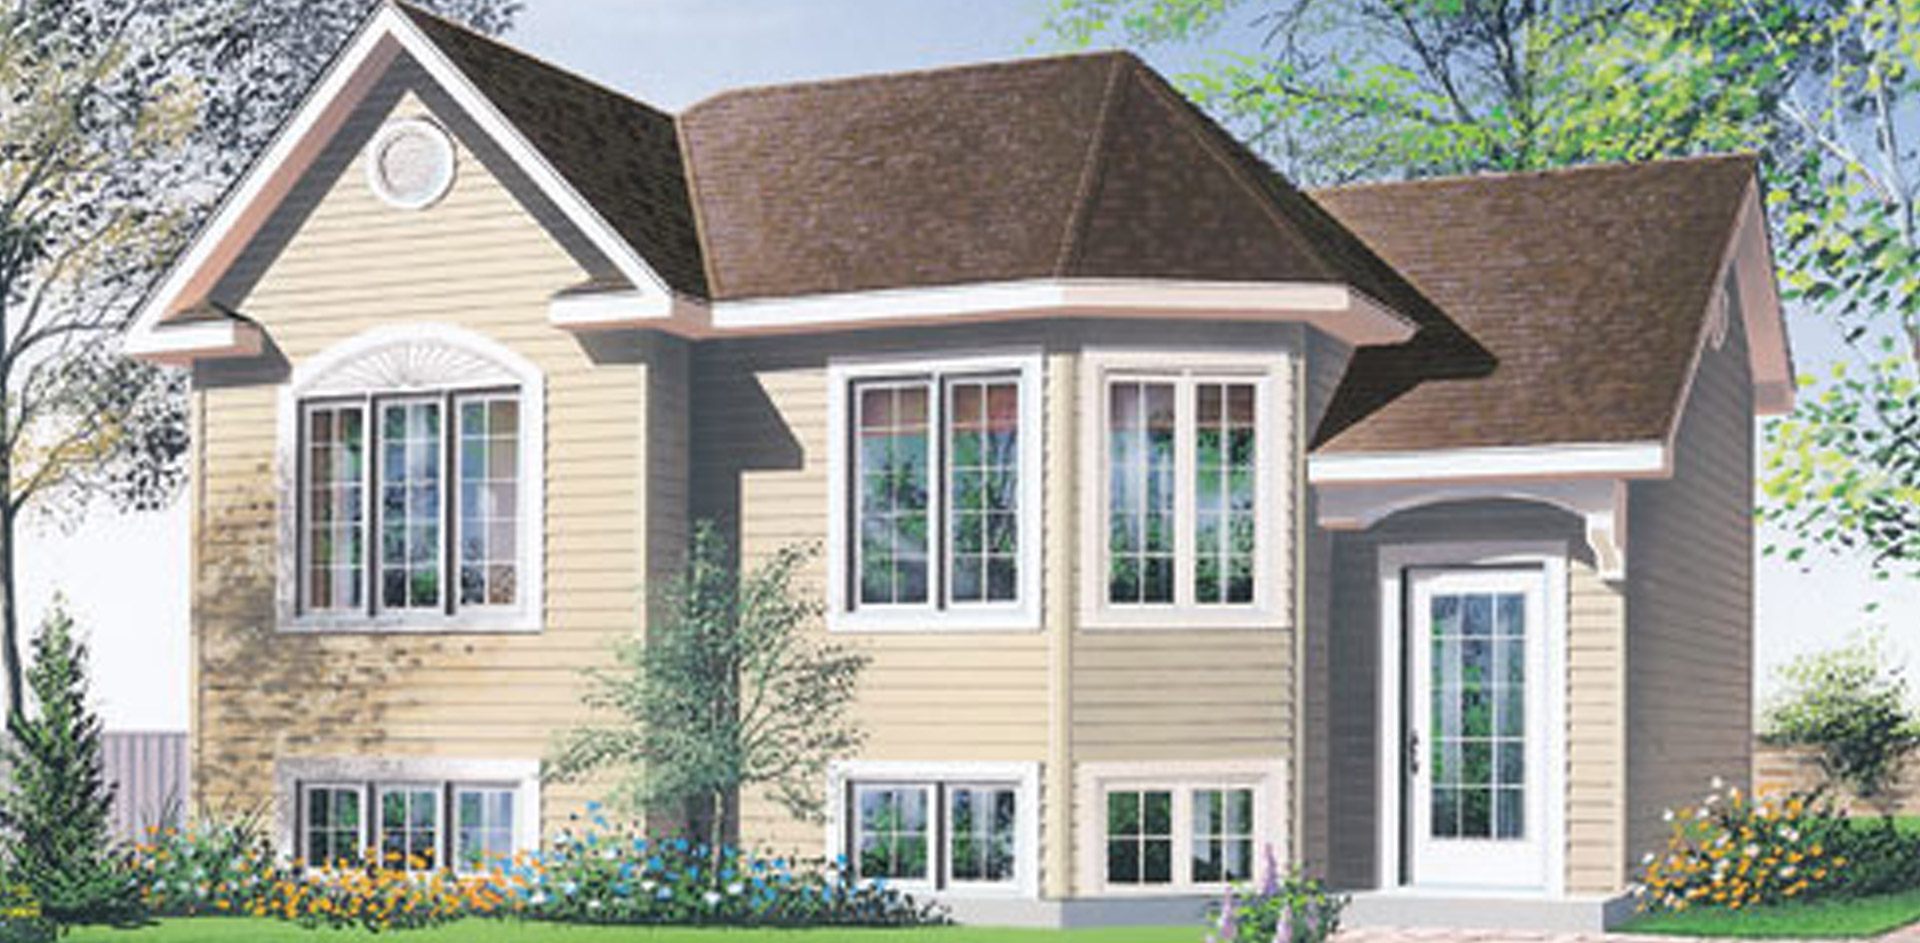 816 sq.ft. timber mart house